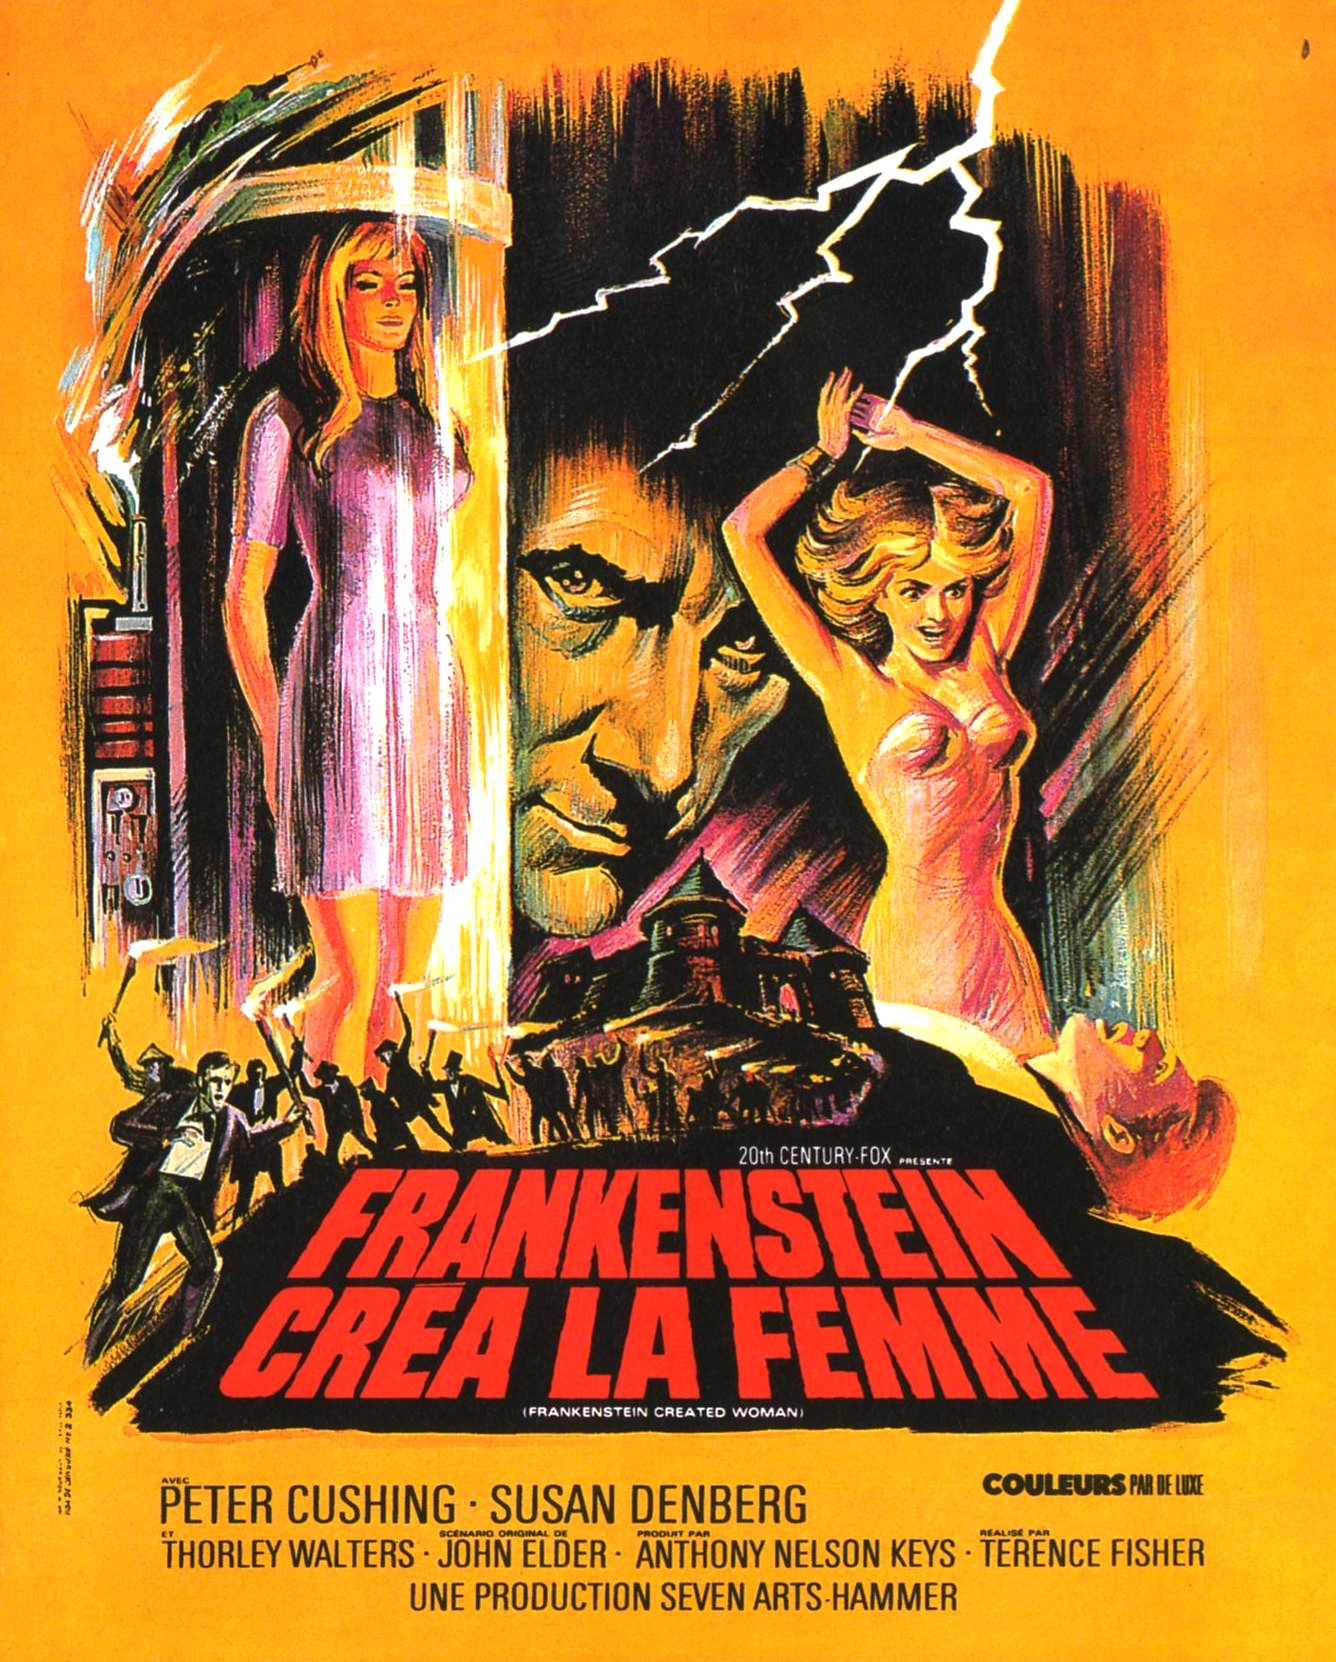 frankenstein created woman poster 05Frankenstein Created Woman Poster